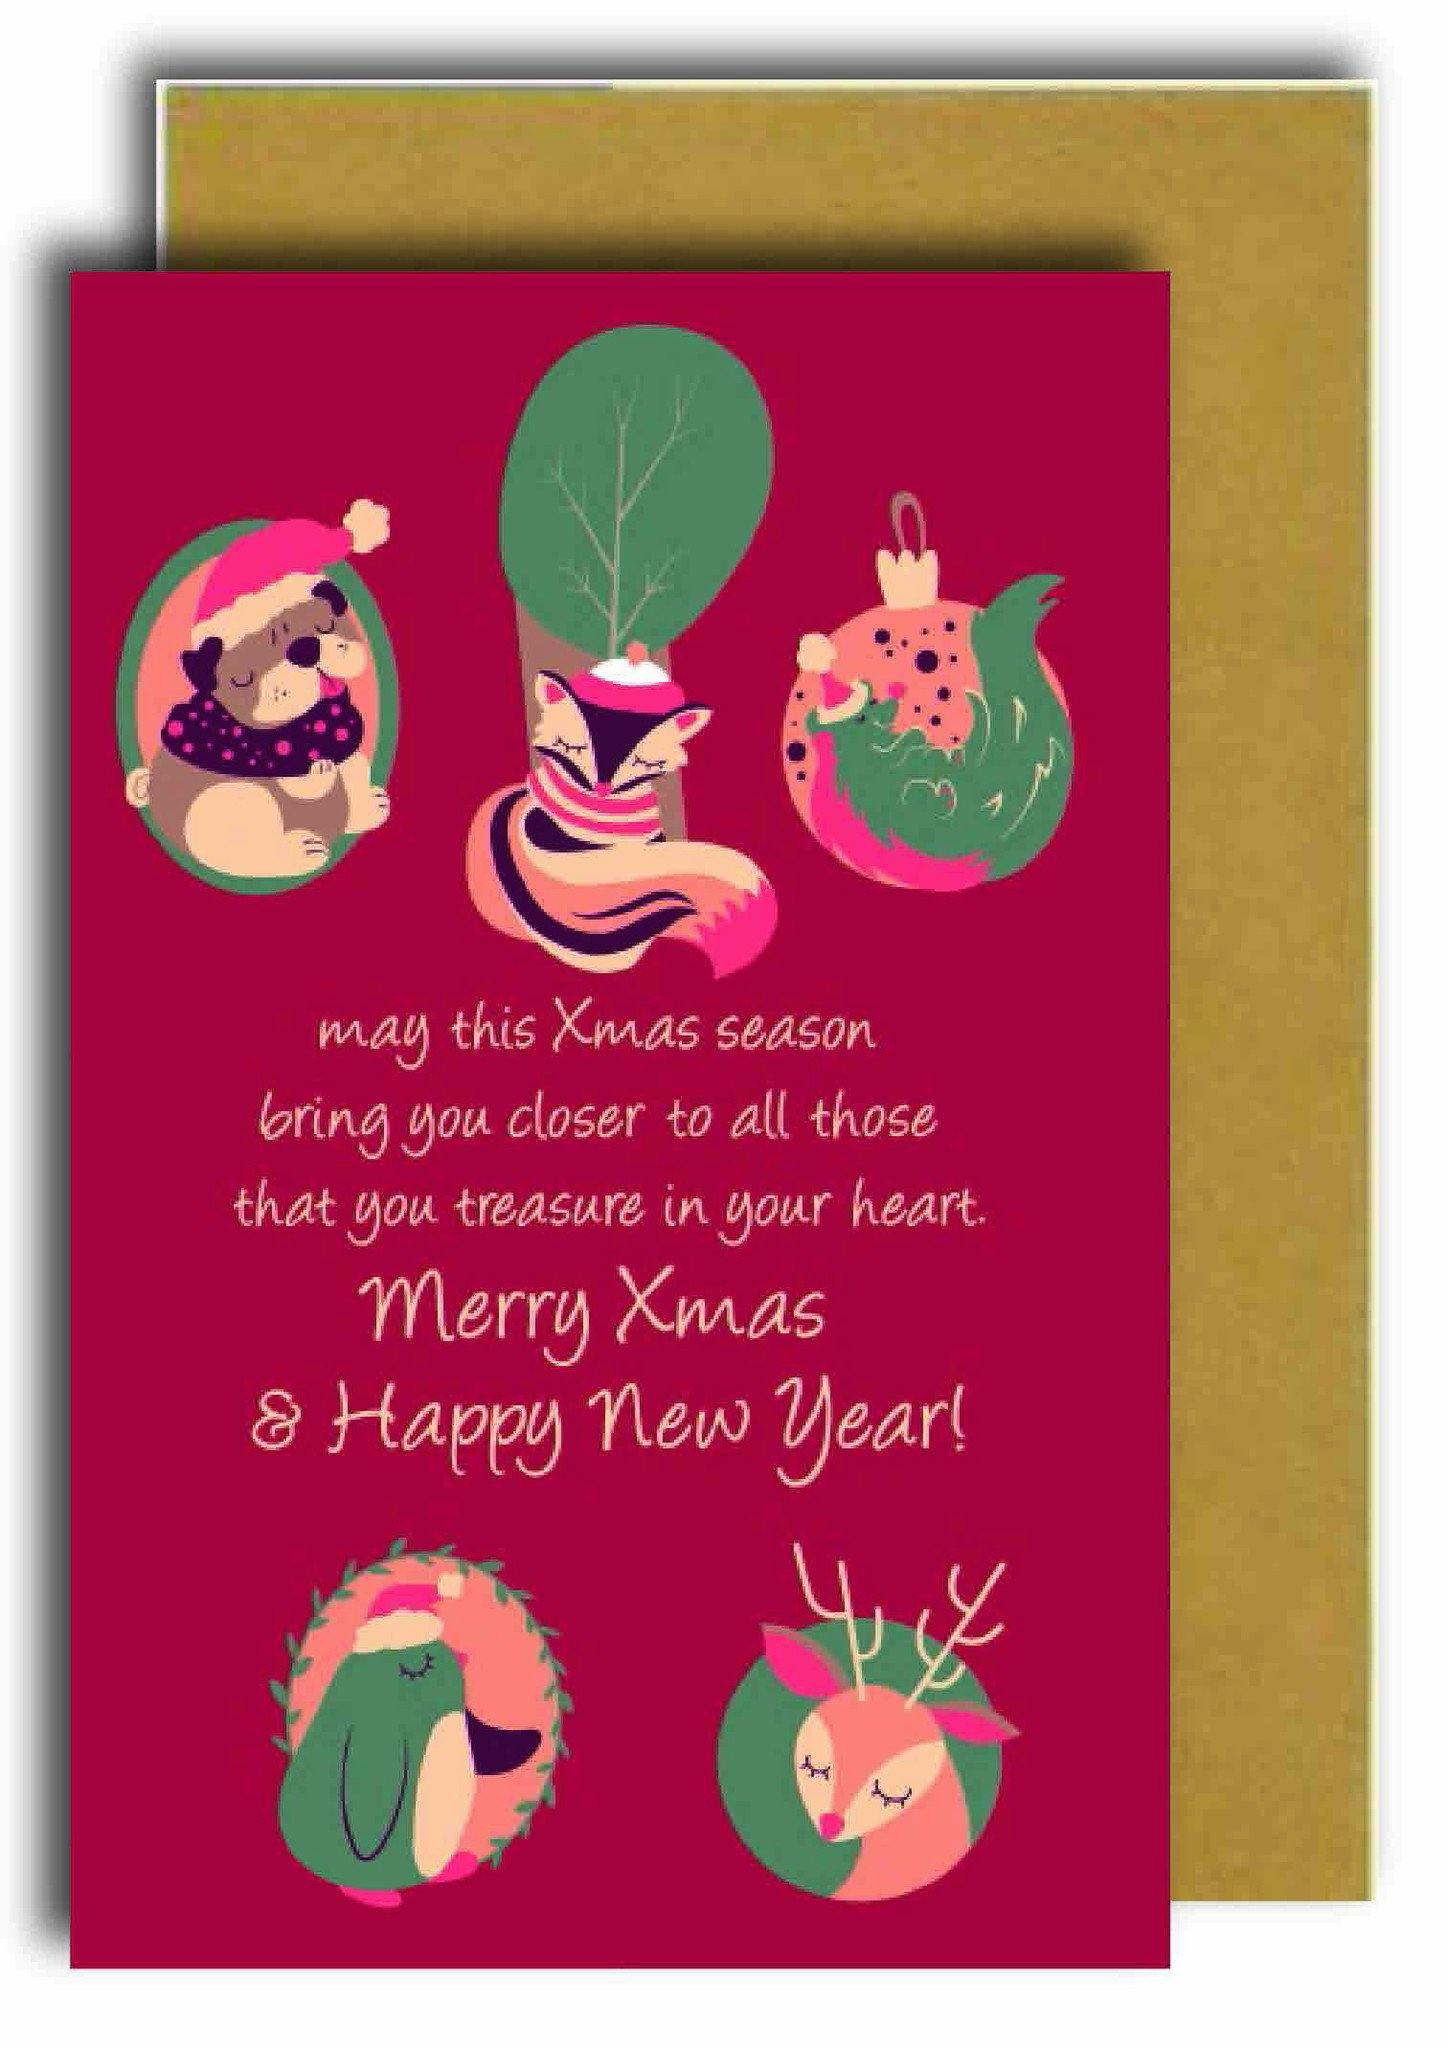 Merry Xmas & Happy New Year Greeting Card - Naiise